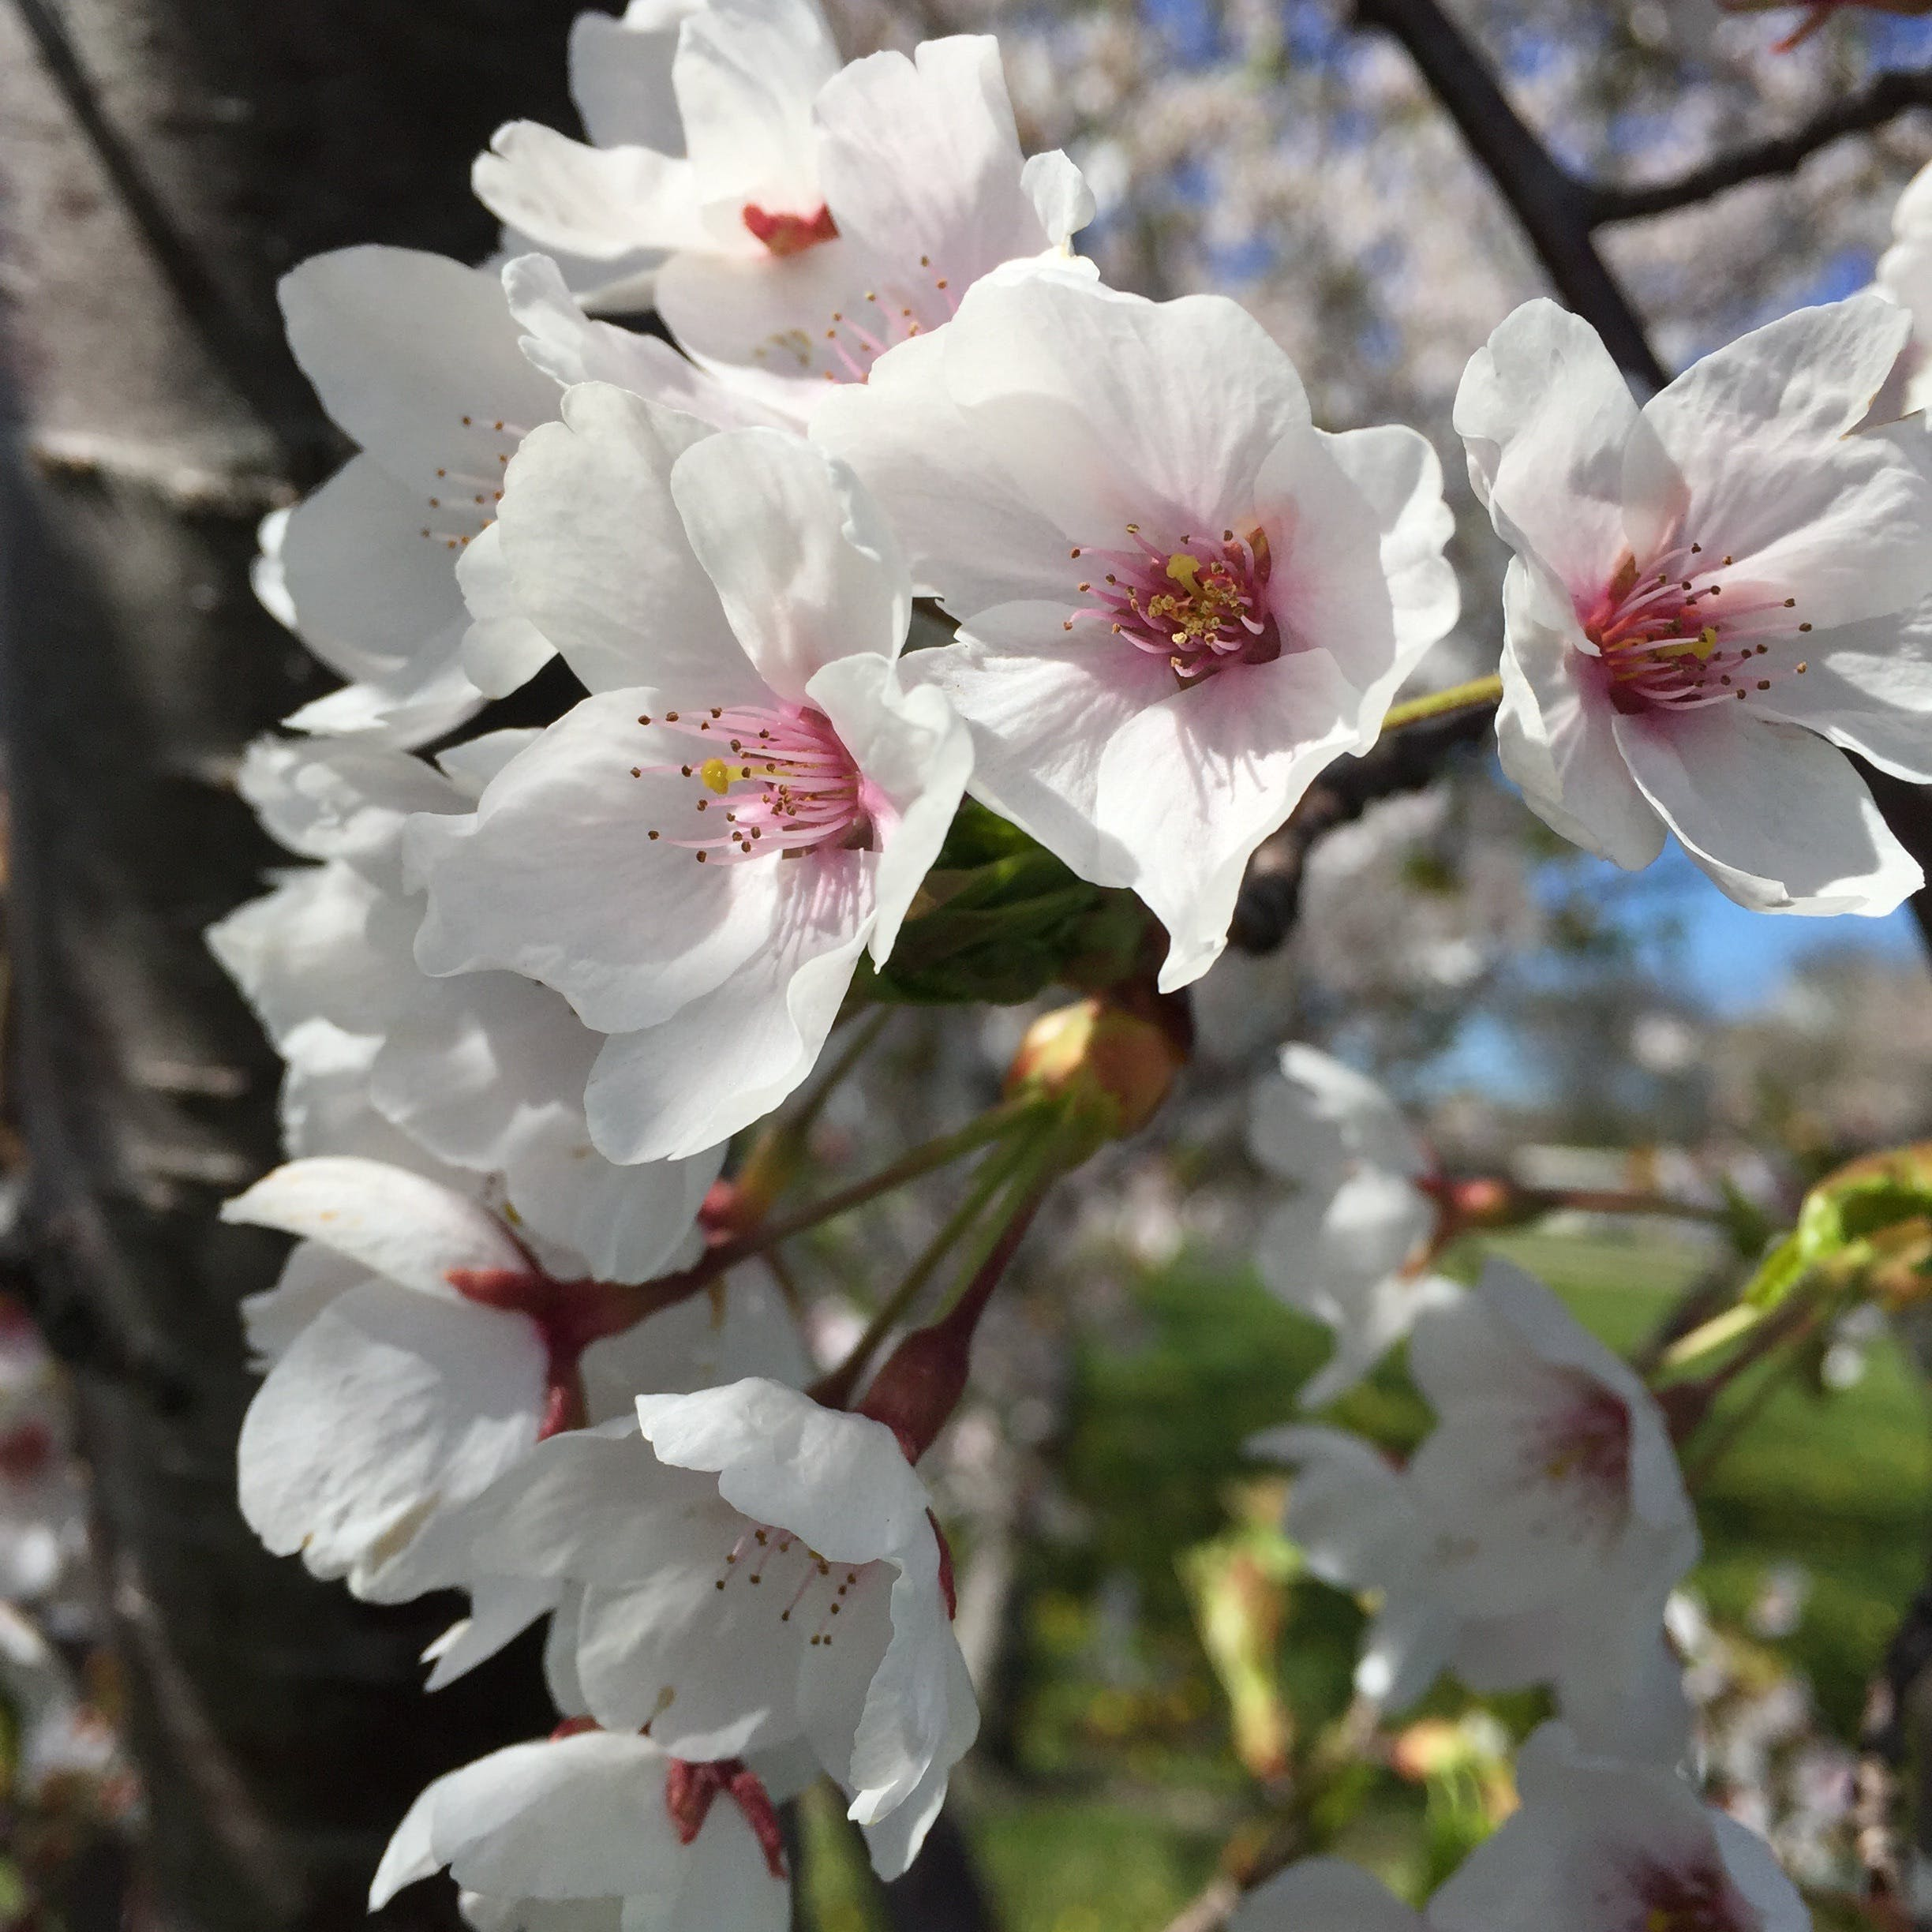 Free stock photo of bloom, blooming, blossoming, blossoms